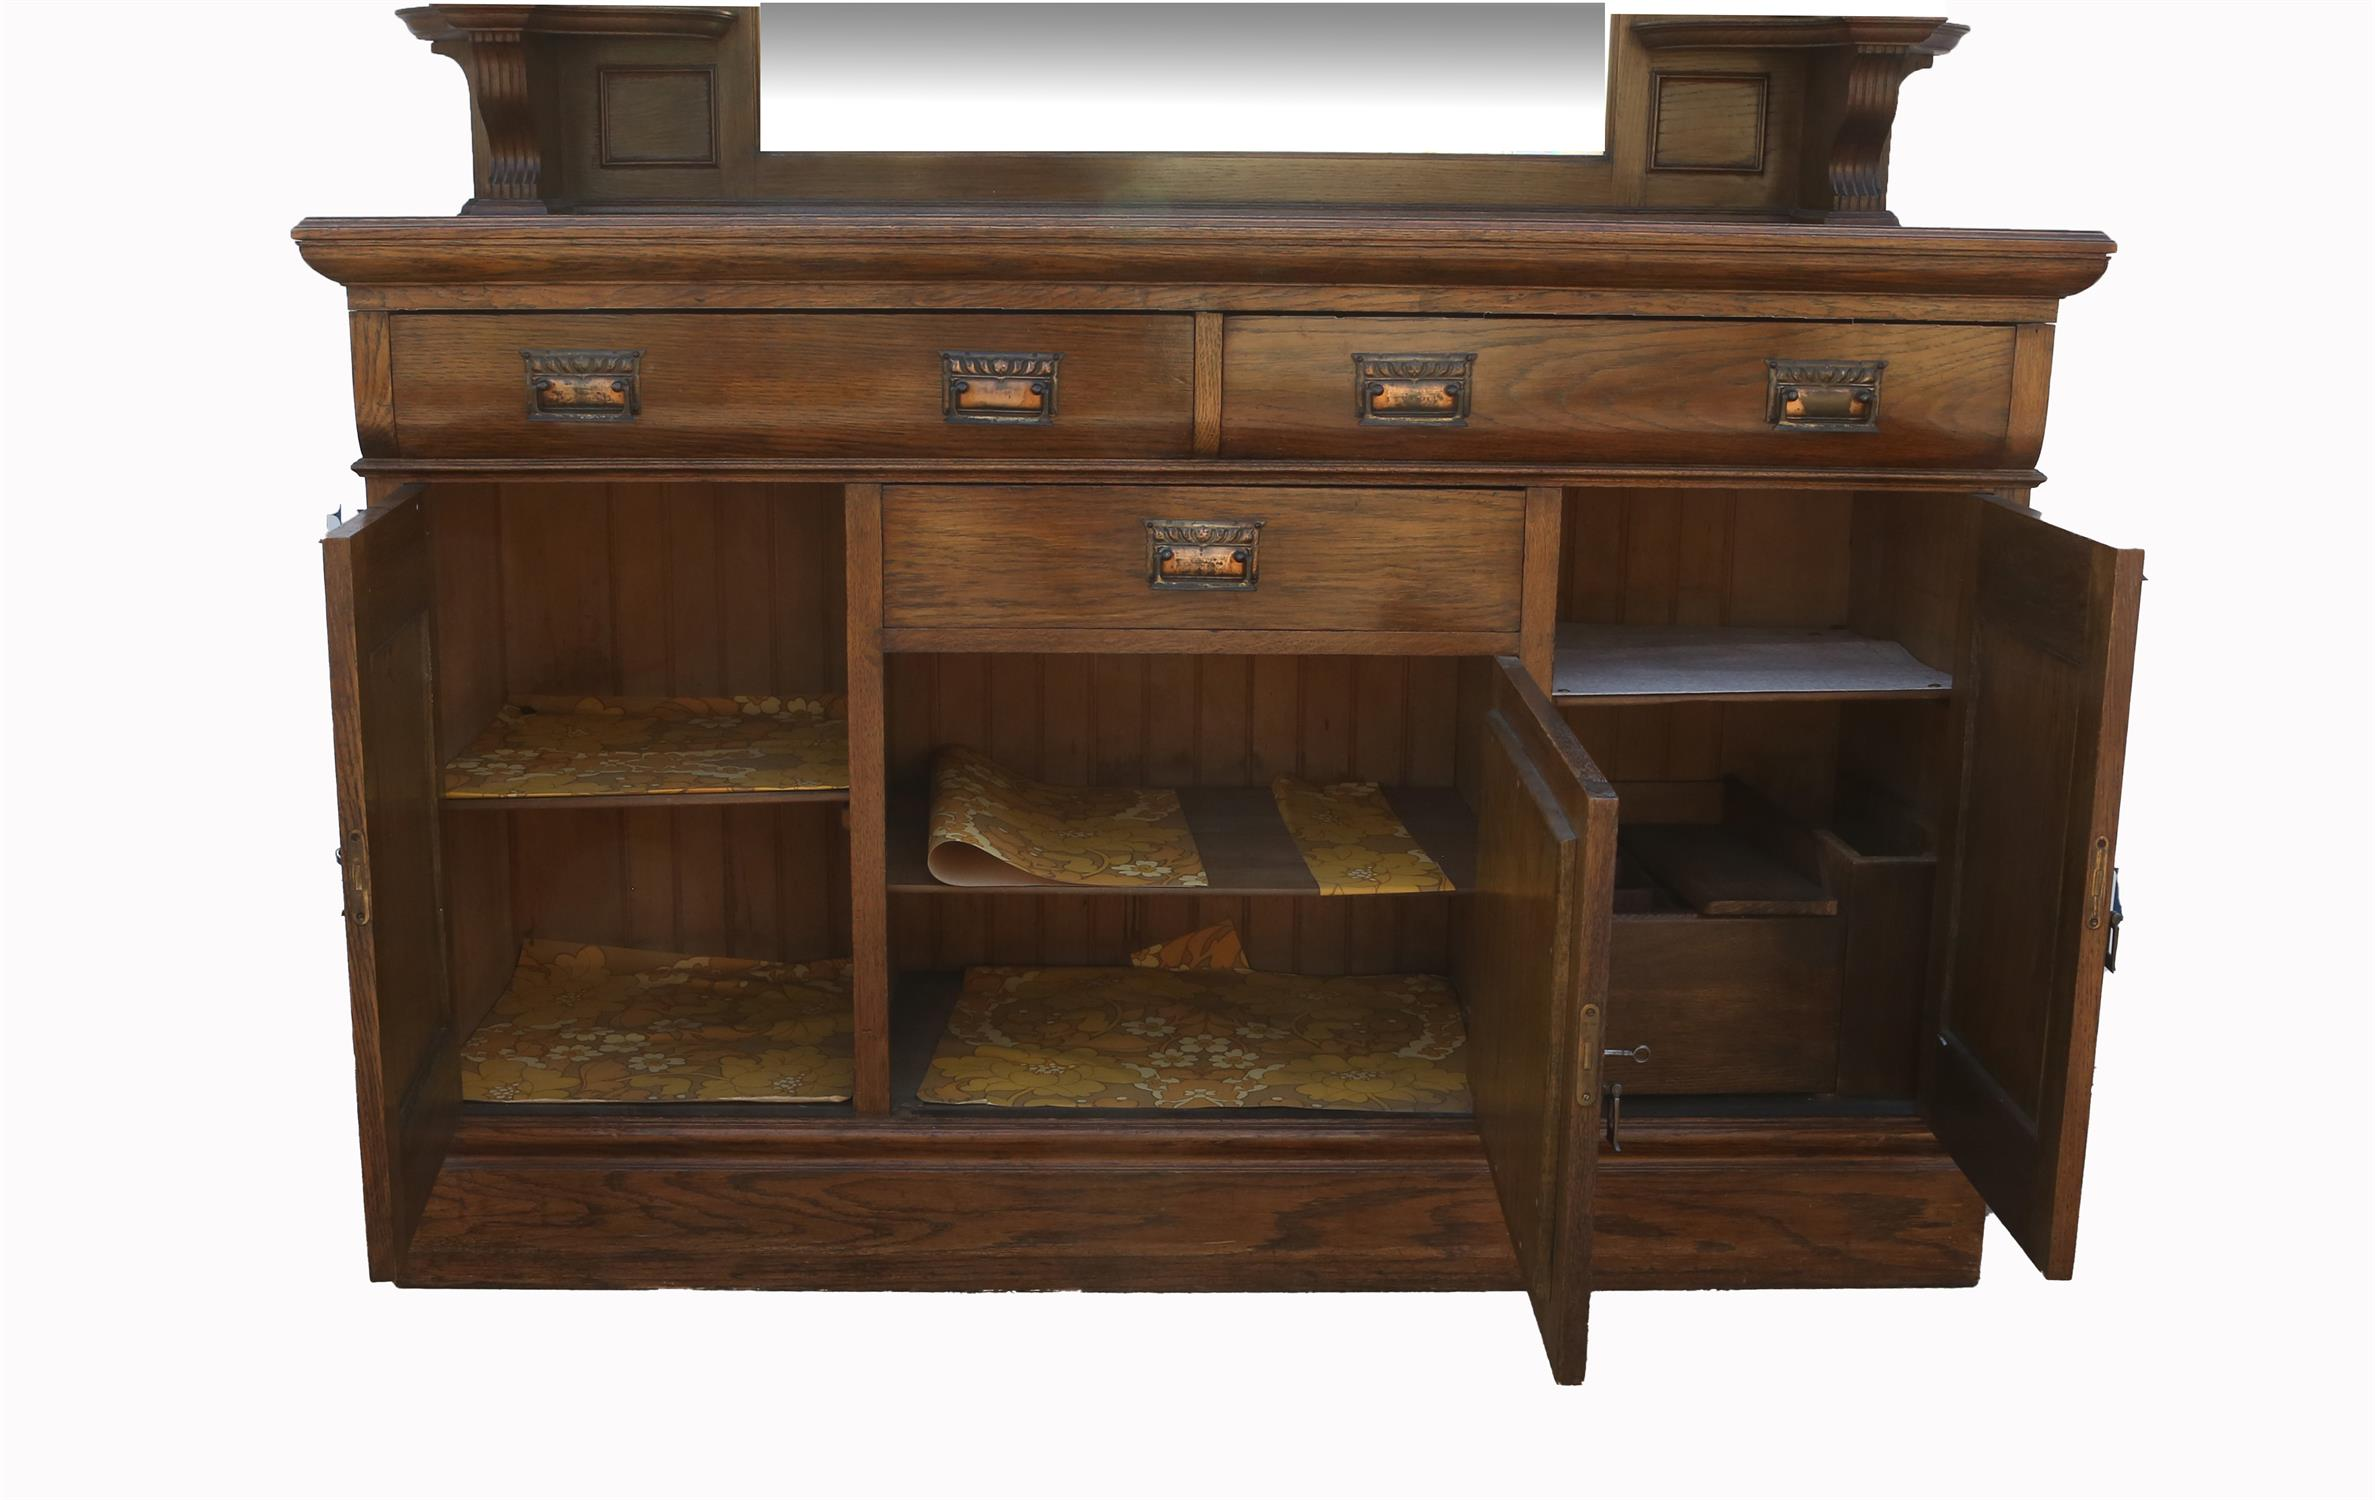 Art Nouveau mirrored back oak sideboard, with bevelled glass plates flanked by floral carved panels - Image 2 of 2